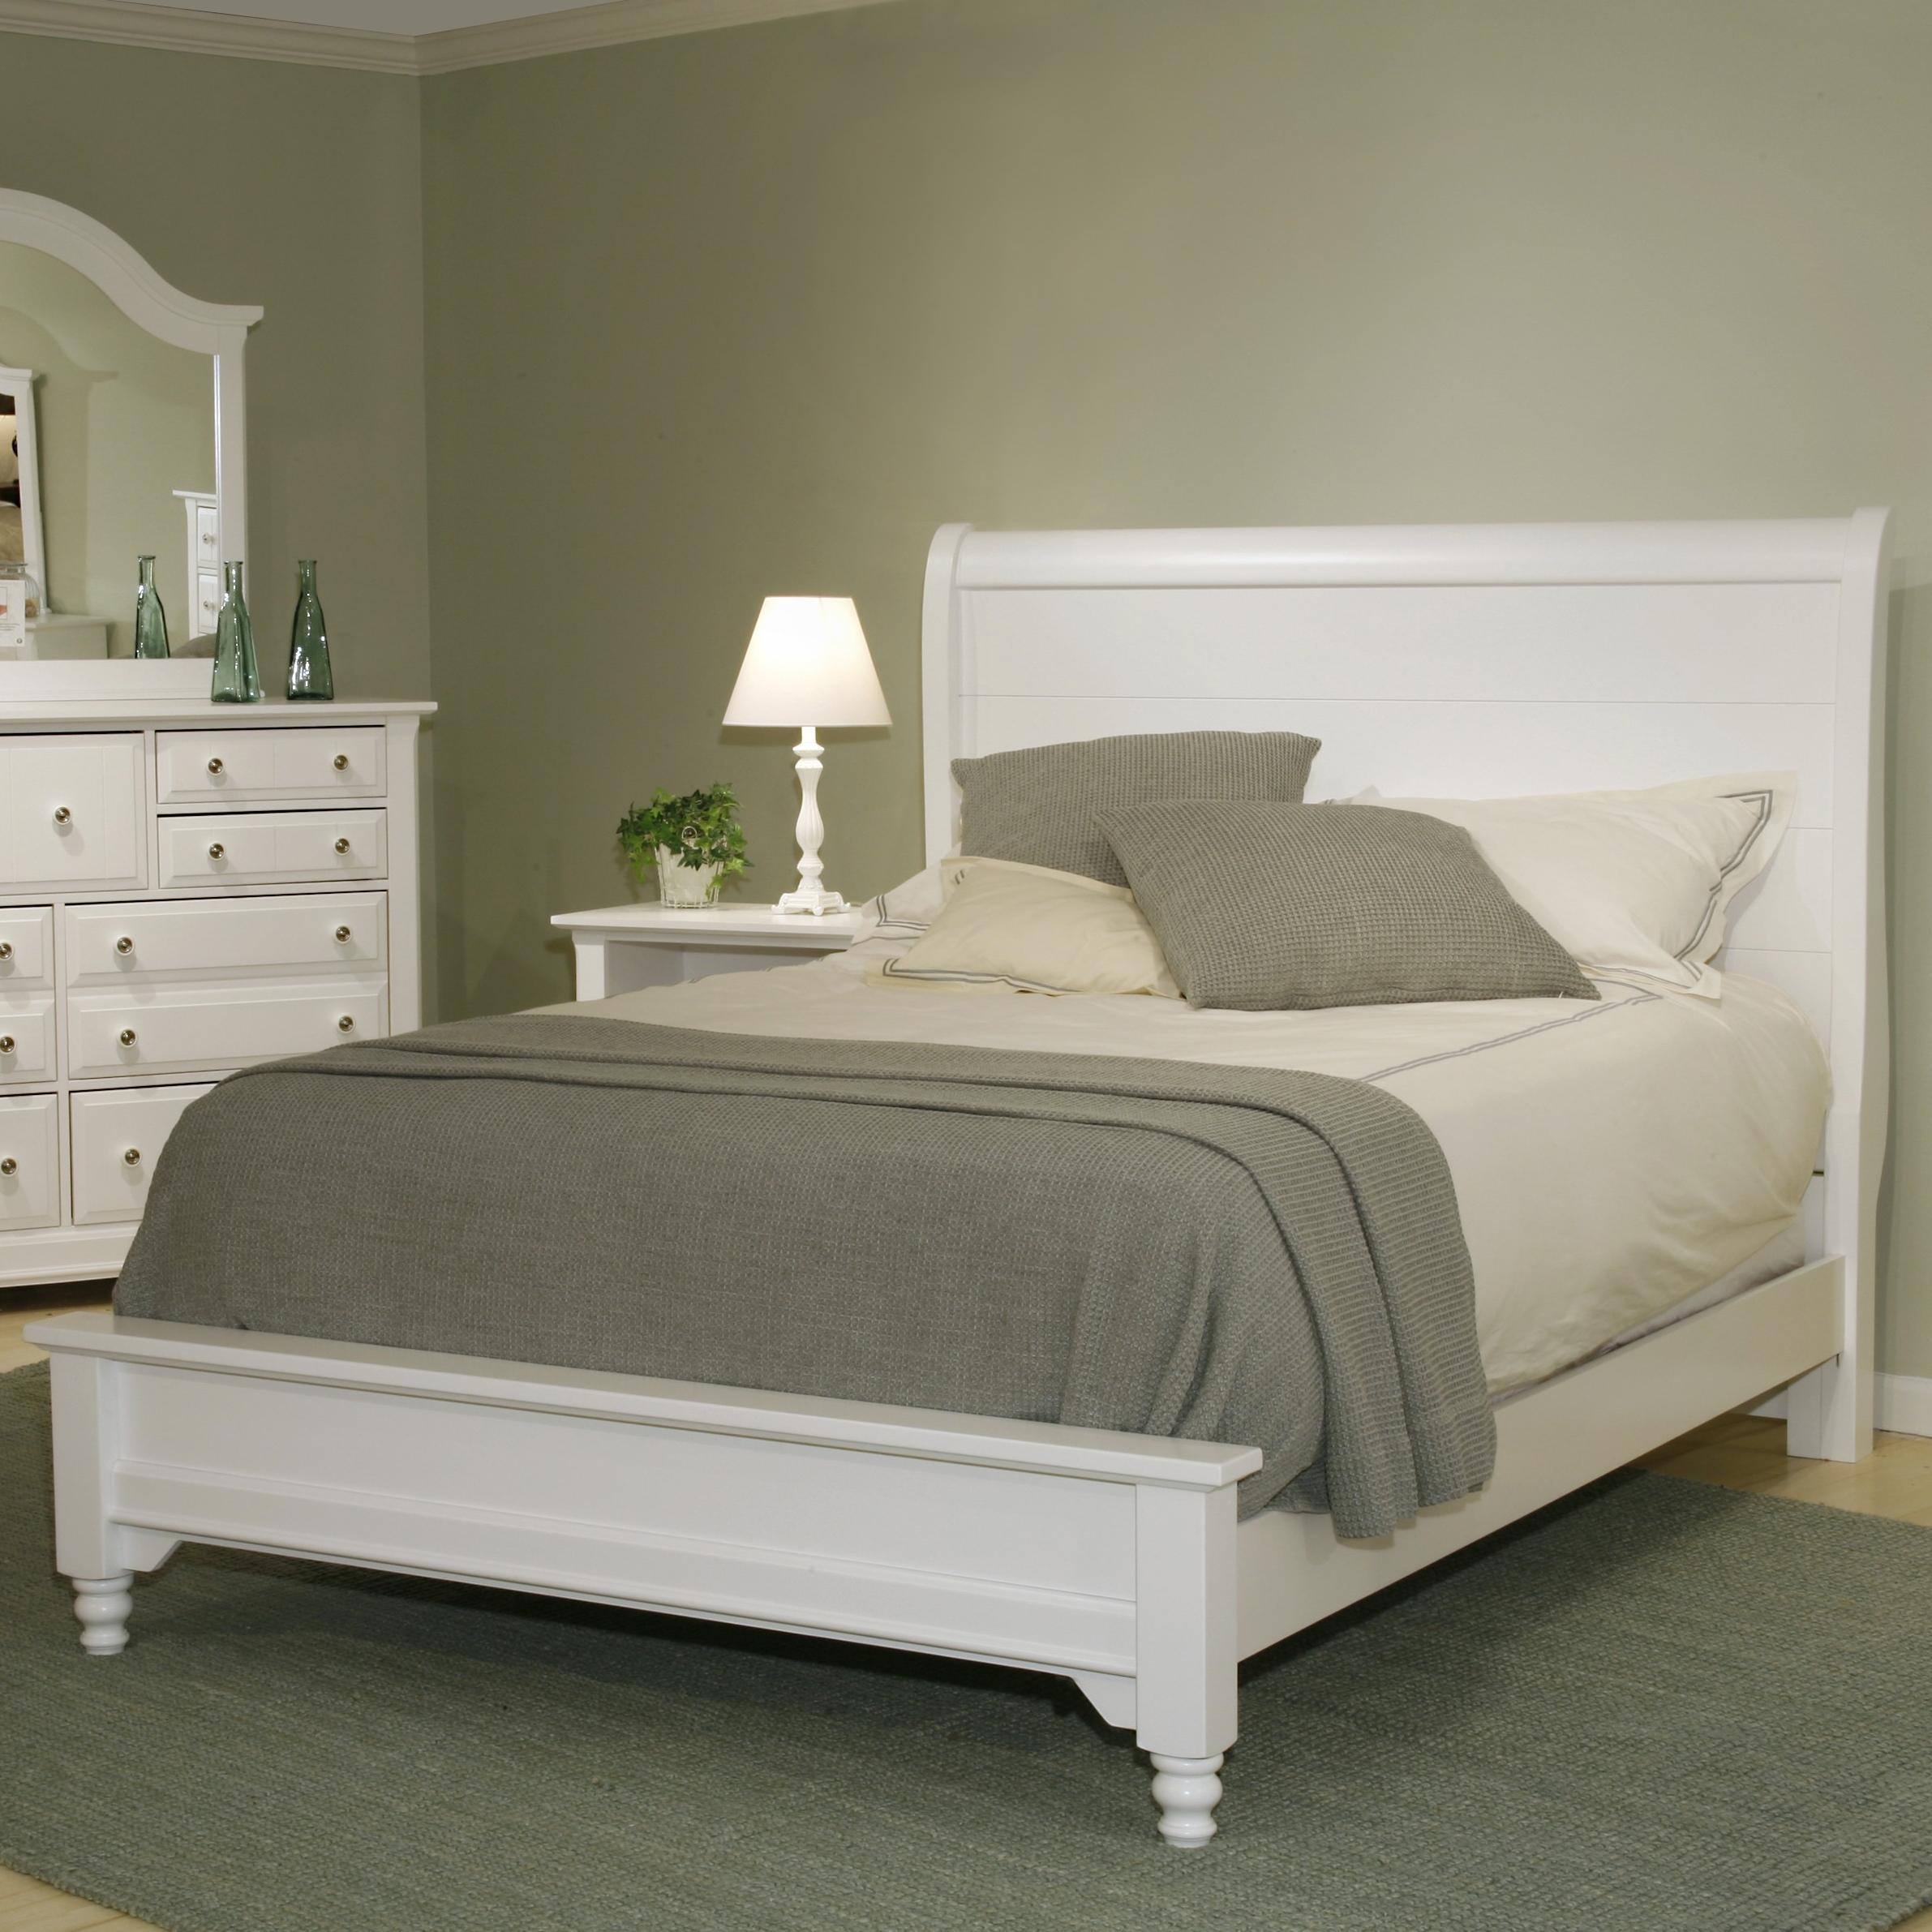 Vaughan Bassett Cottage Full Sleigh Bed w/ Low Footboard  - Item Number: BB24-441+144+911